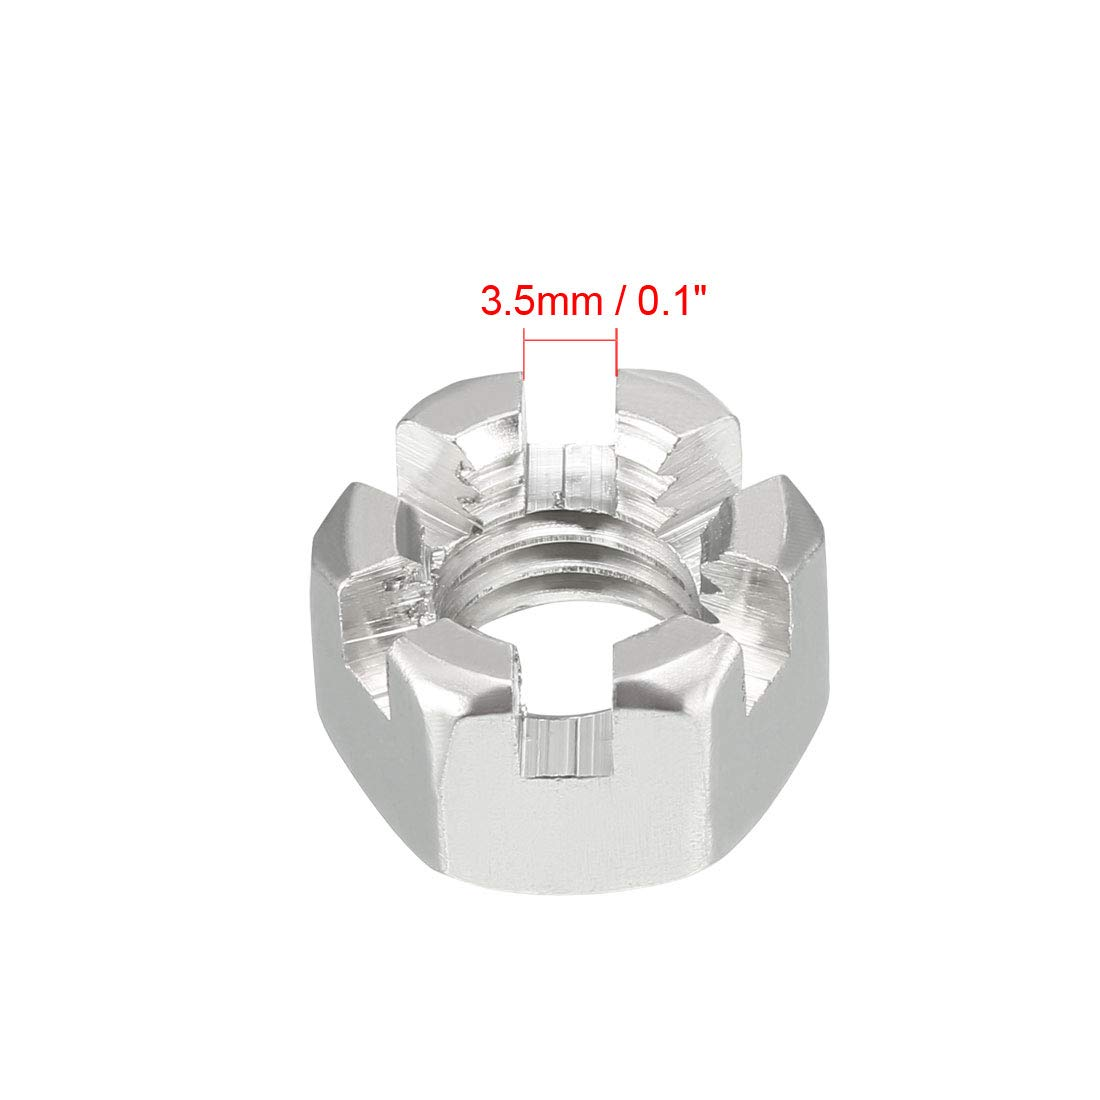 uxcell M14 x 2mm Pitch 304 Stainless Steel Hexagon Slotted Castle Nuts 5 Pcs SYNCE006875